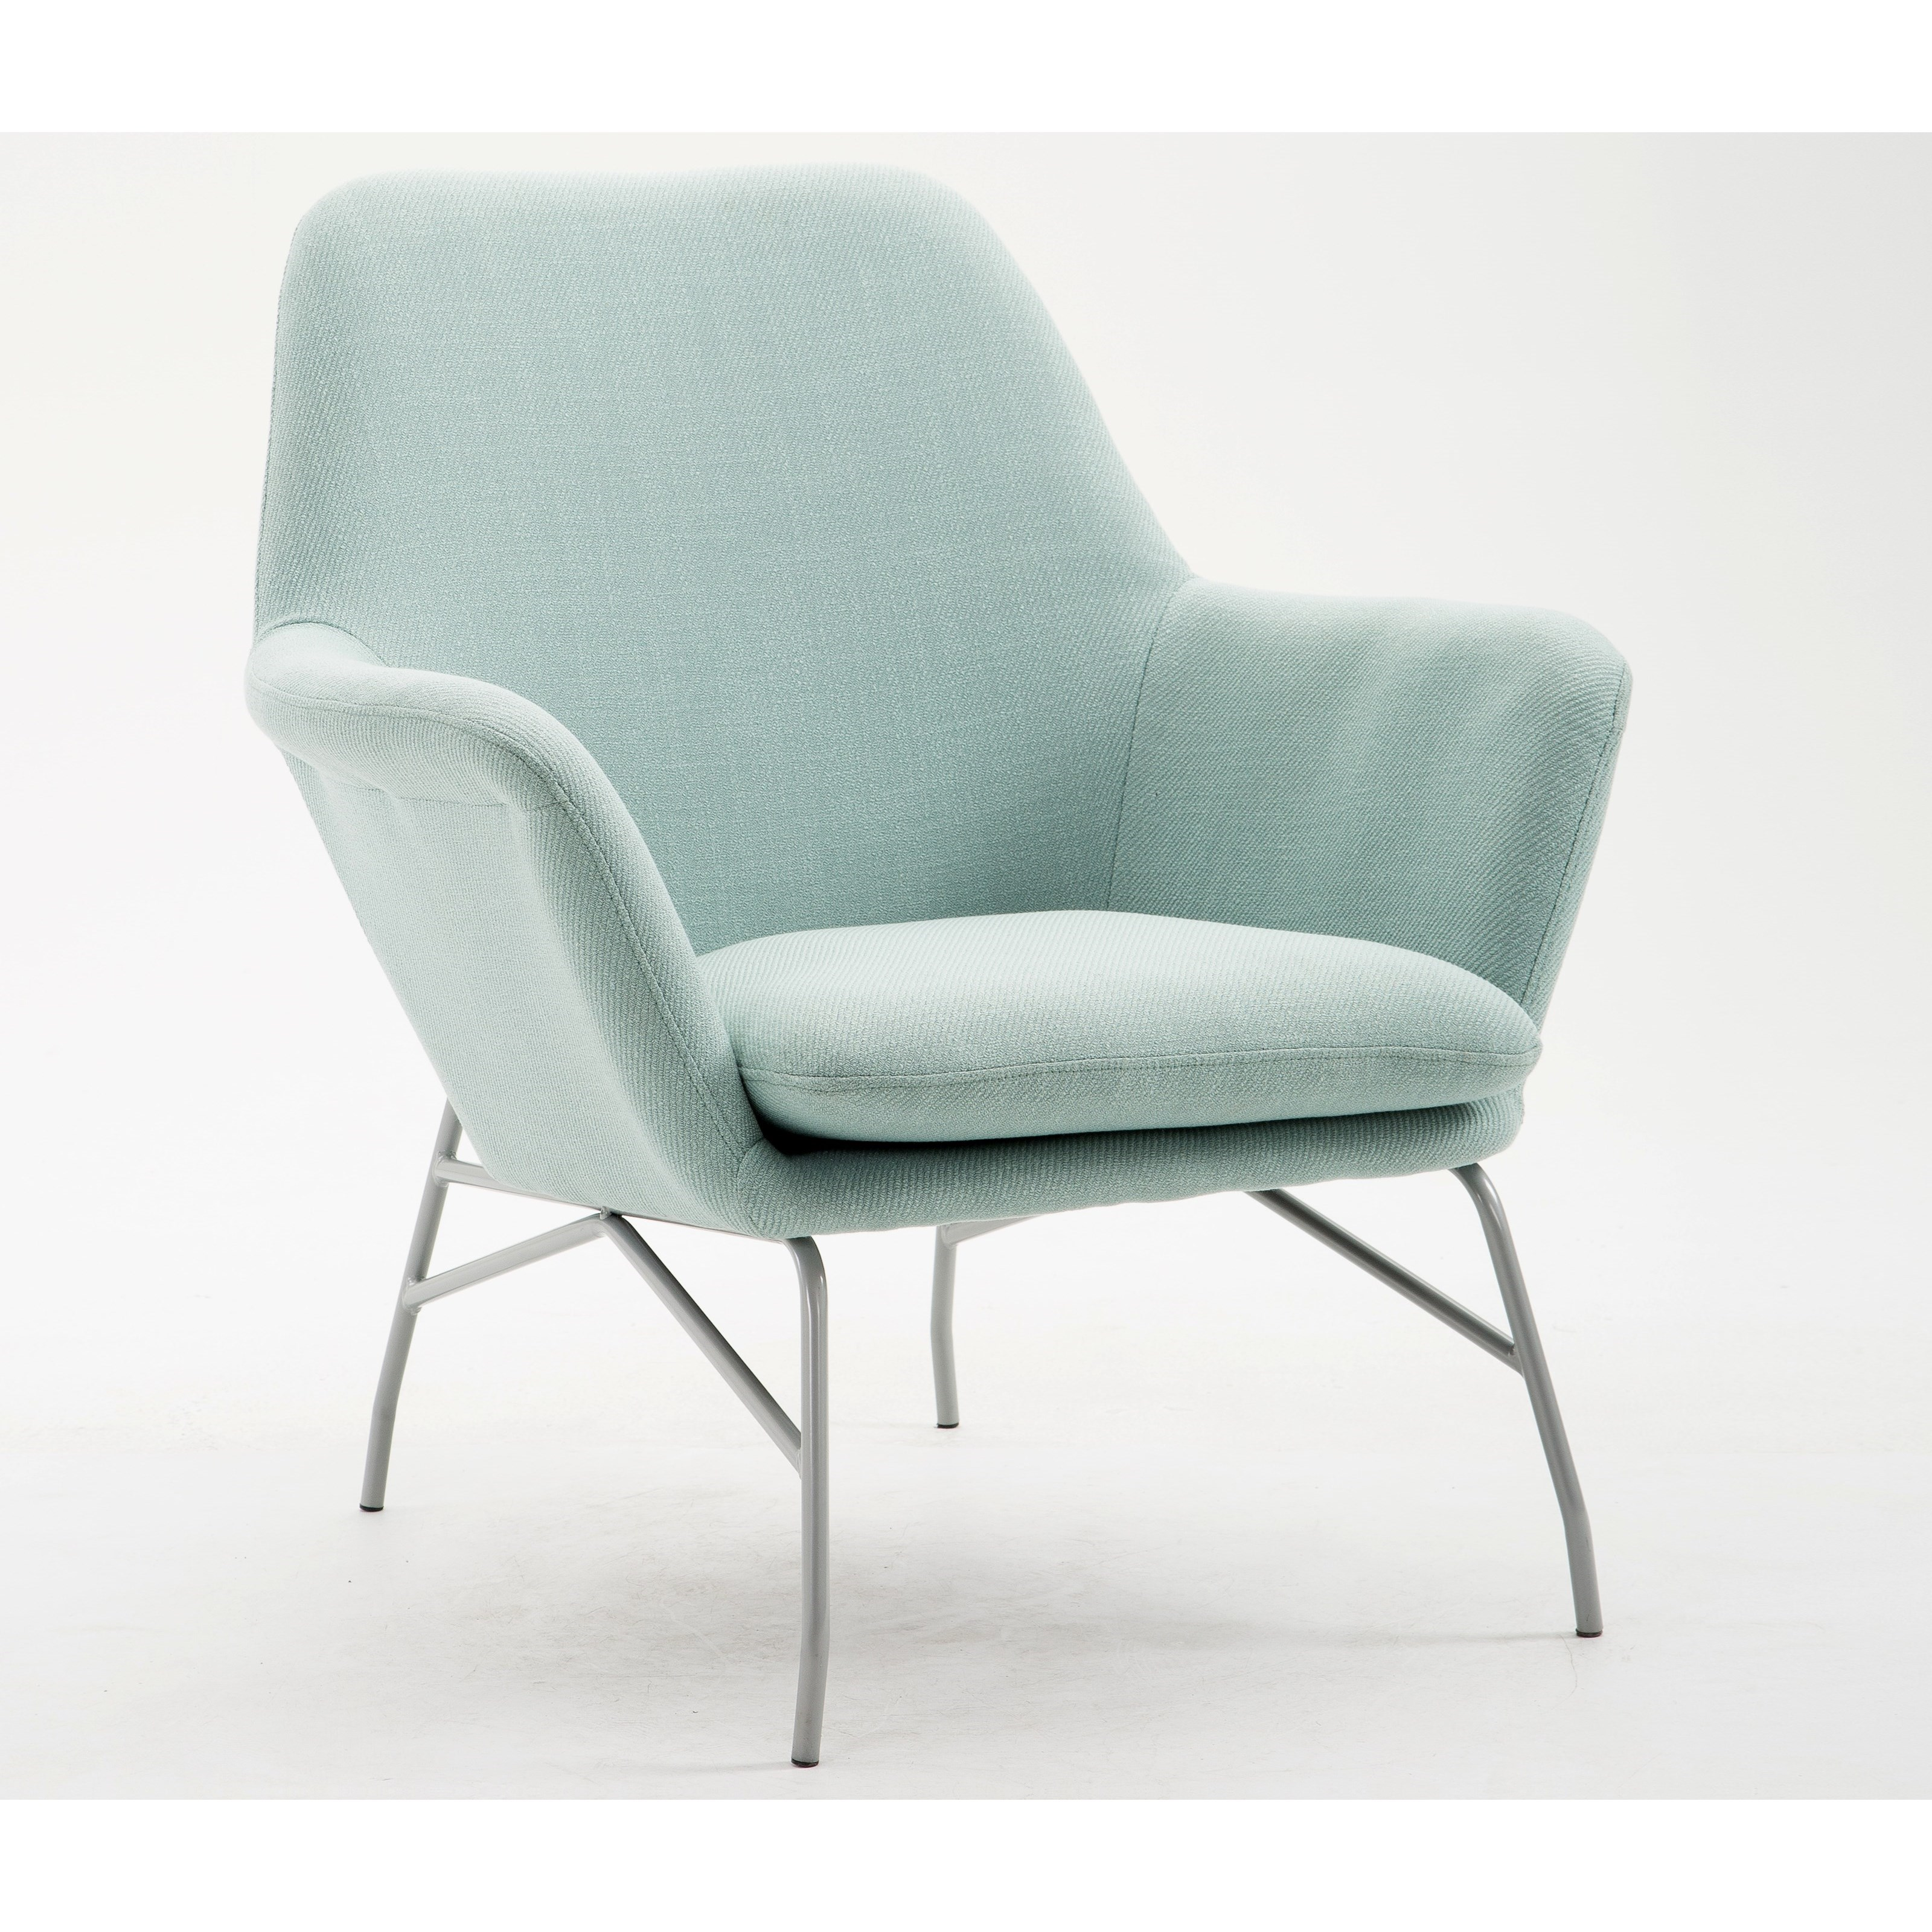 Essex Accent Chair by Emerald at Northeast Factory Direct